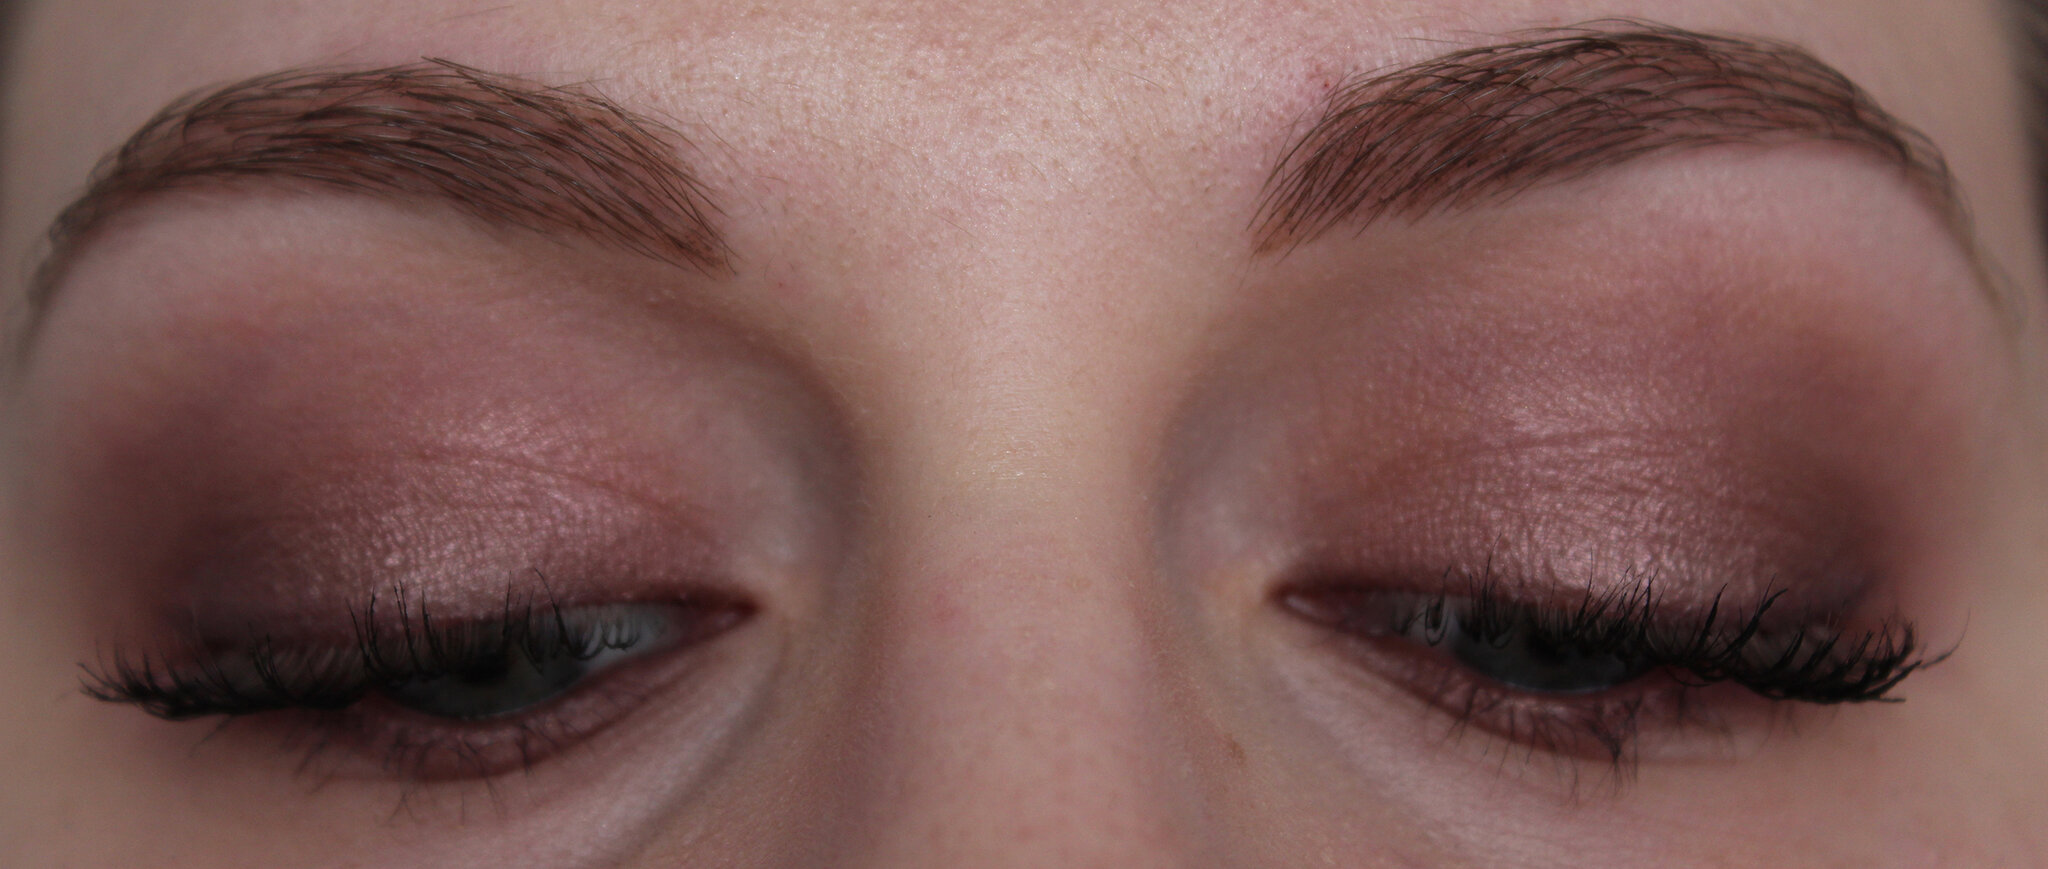 Assez Tuto n°26 : Maquillage intense avec la Naked 3 Urban Decay - Les  TS78